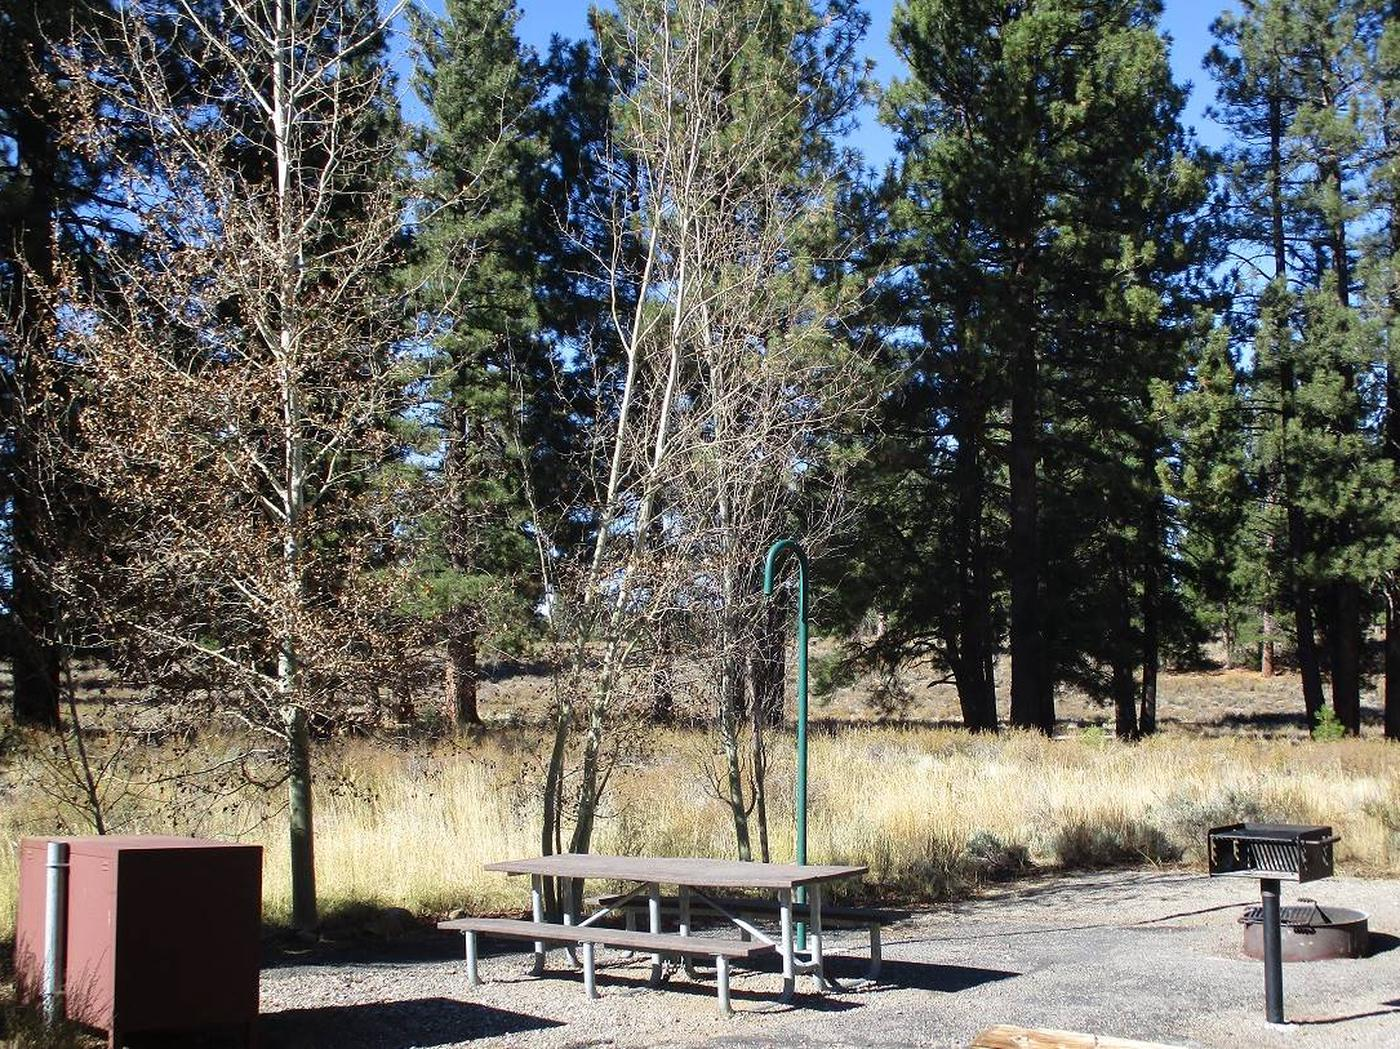 Campsite FeaturesEach campsite features a bear box, picnic table, fire ring, grill, and lantern hook.